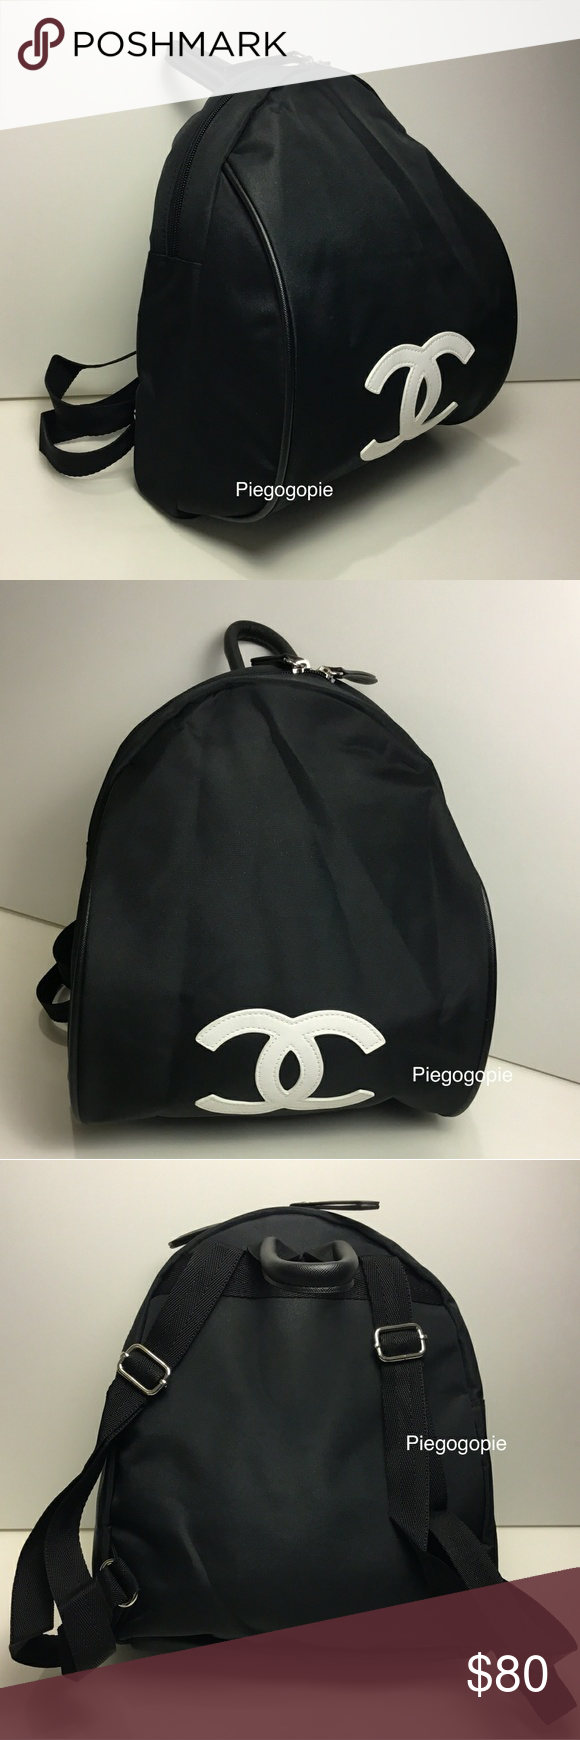 91405e2b3854f0 Authentic Chanel Nylon Logo Backpack Brand New Authentic 2018 Chanel GWP  Gift Black Nylon Backpack-